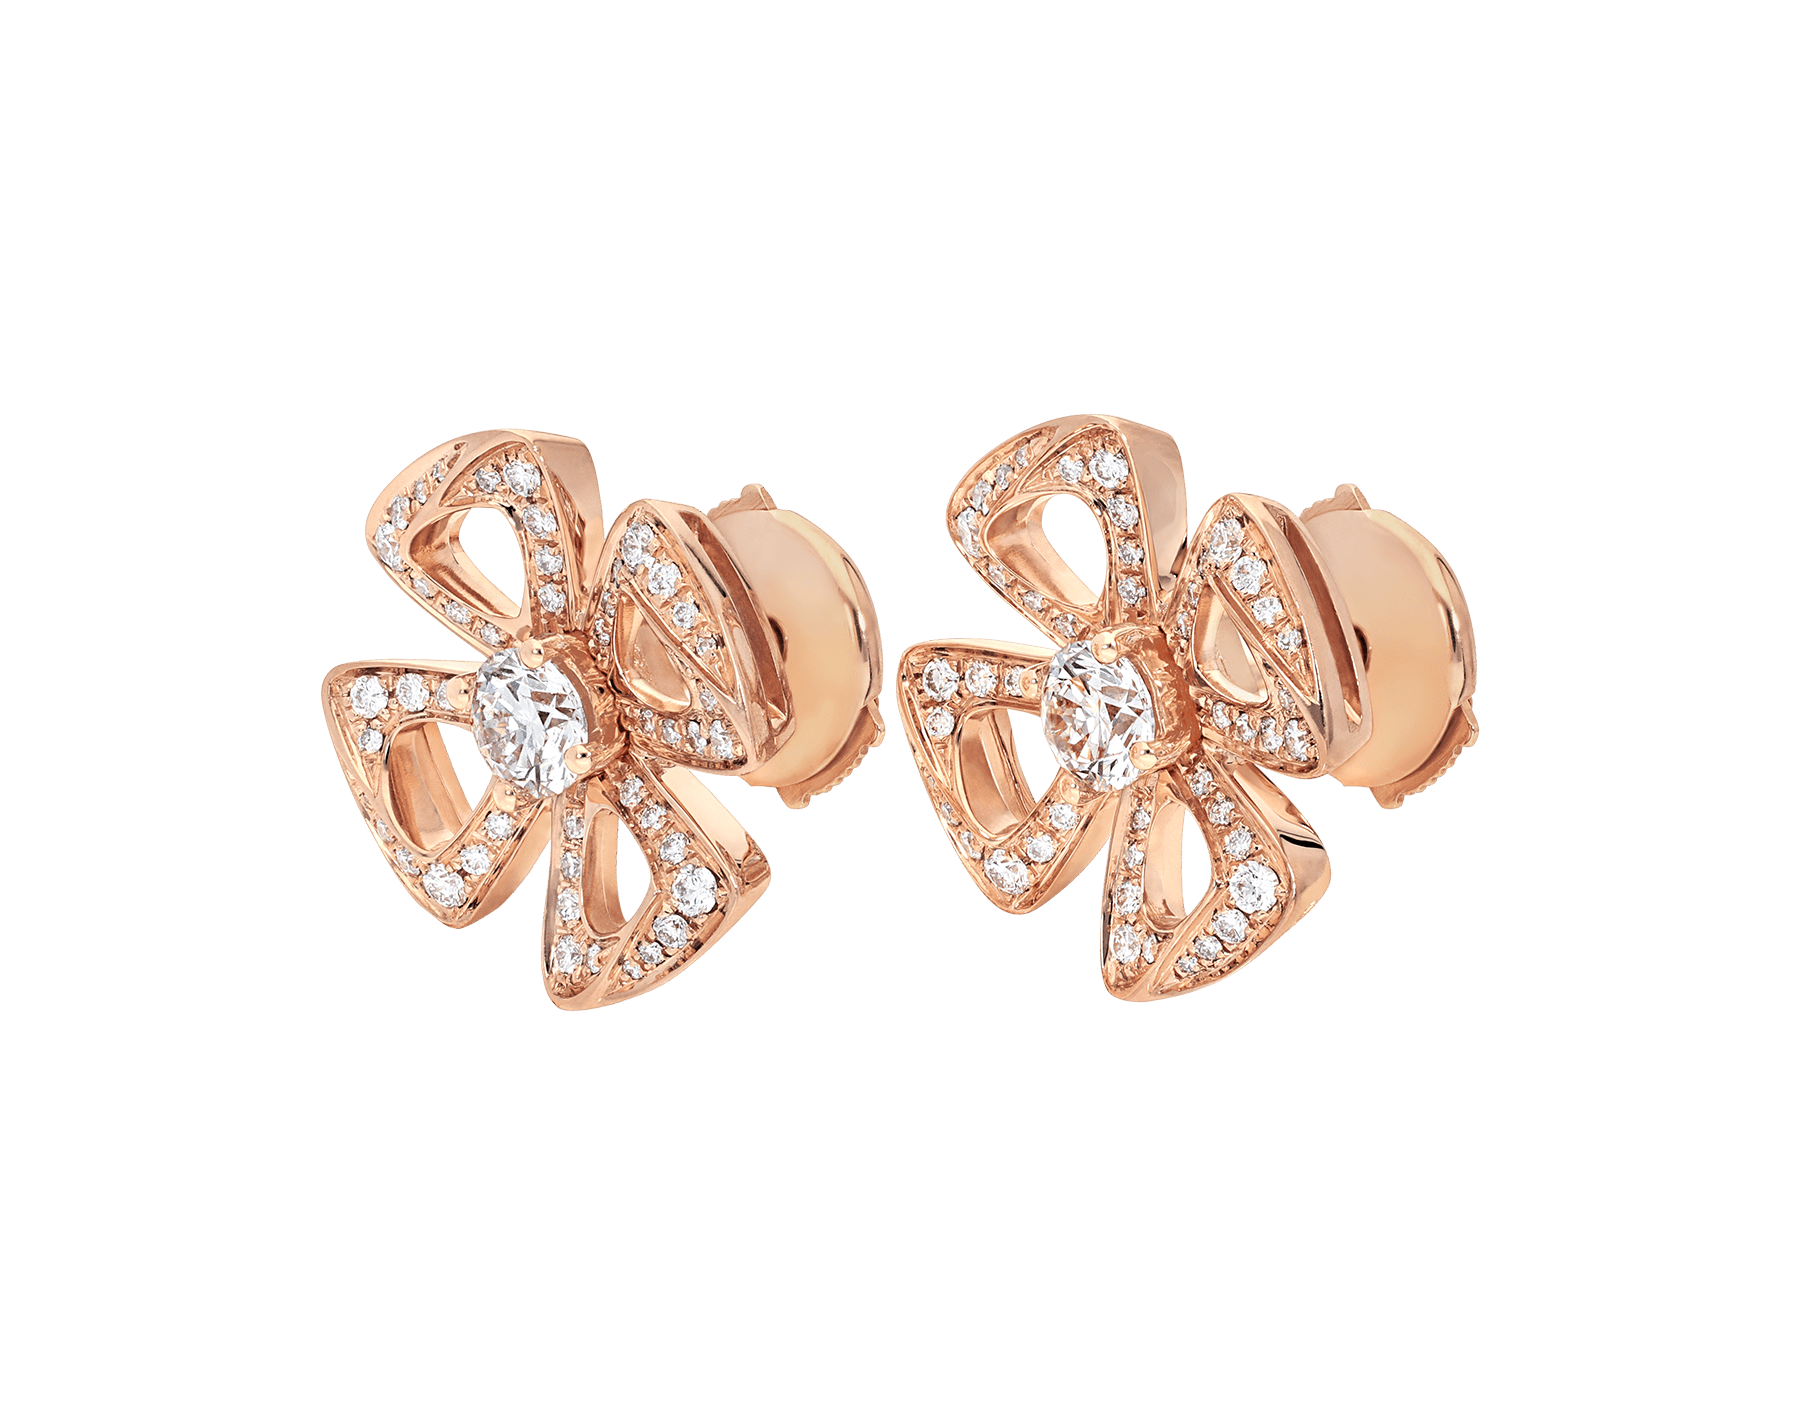 Fiorever 18 kt rose gold earrings, set with two central diamonds and pavé diamonds. 355887 image 2